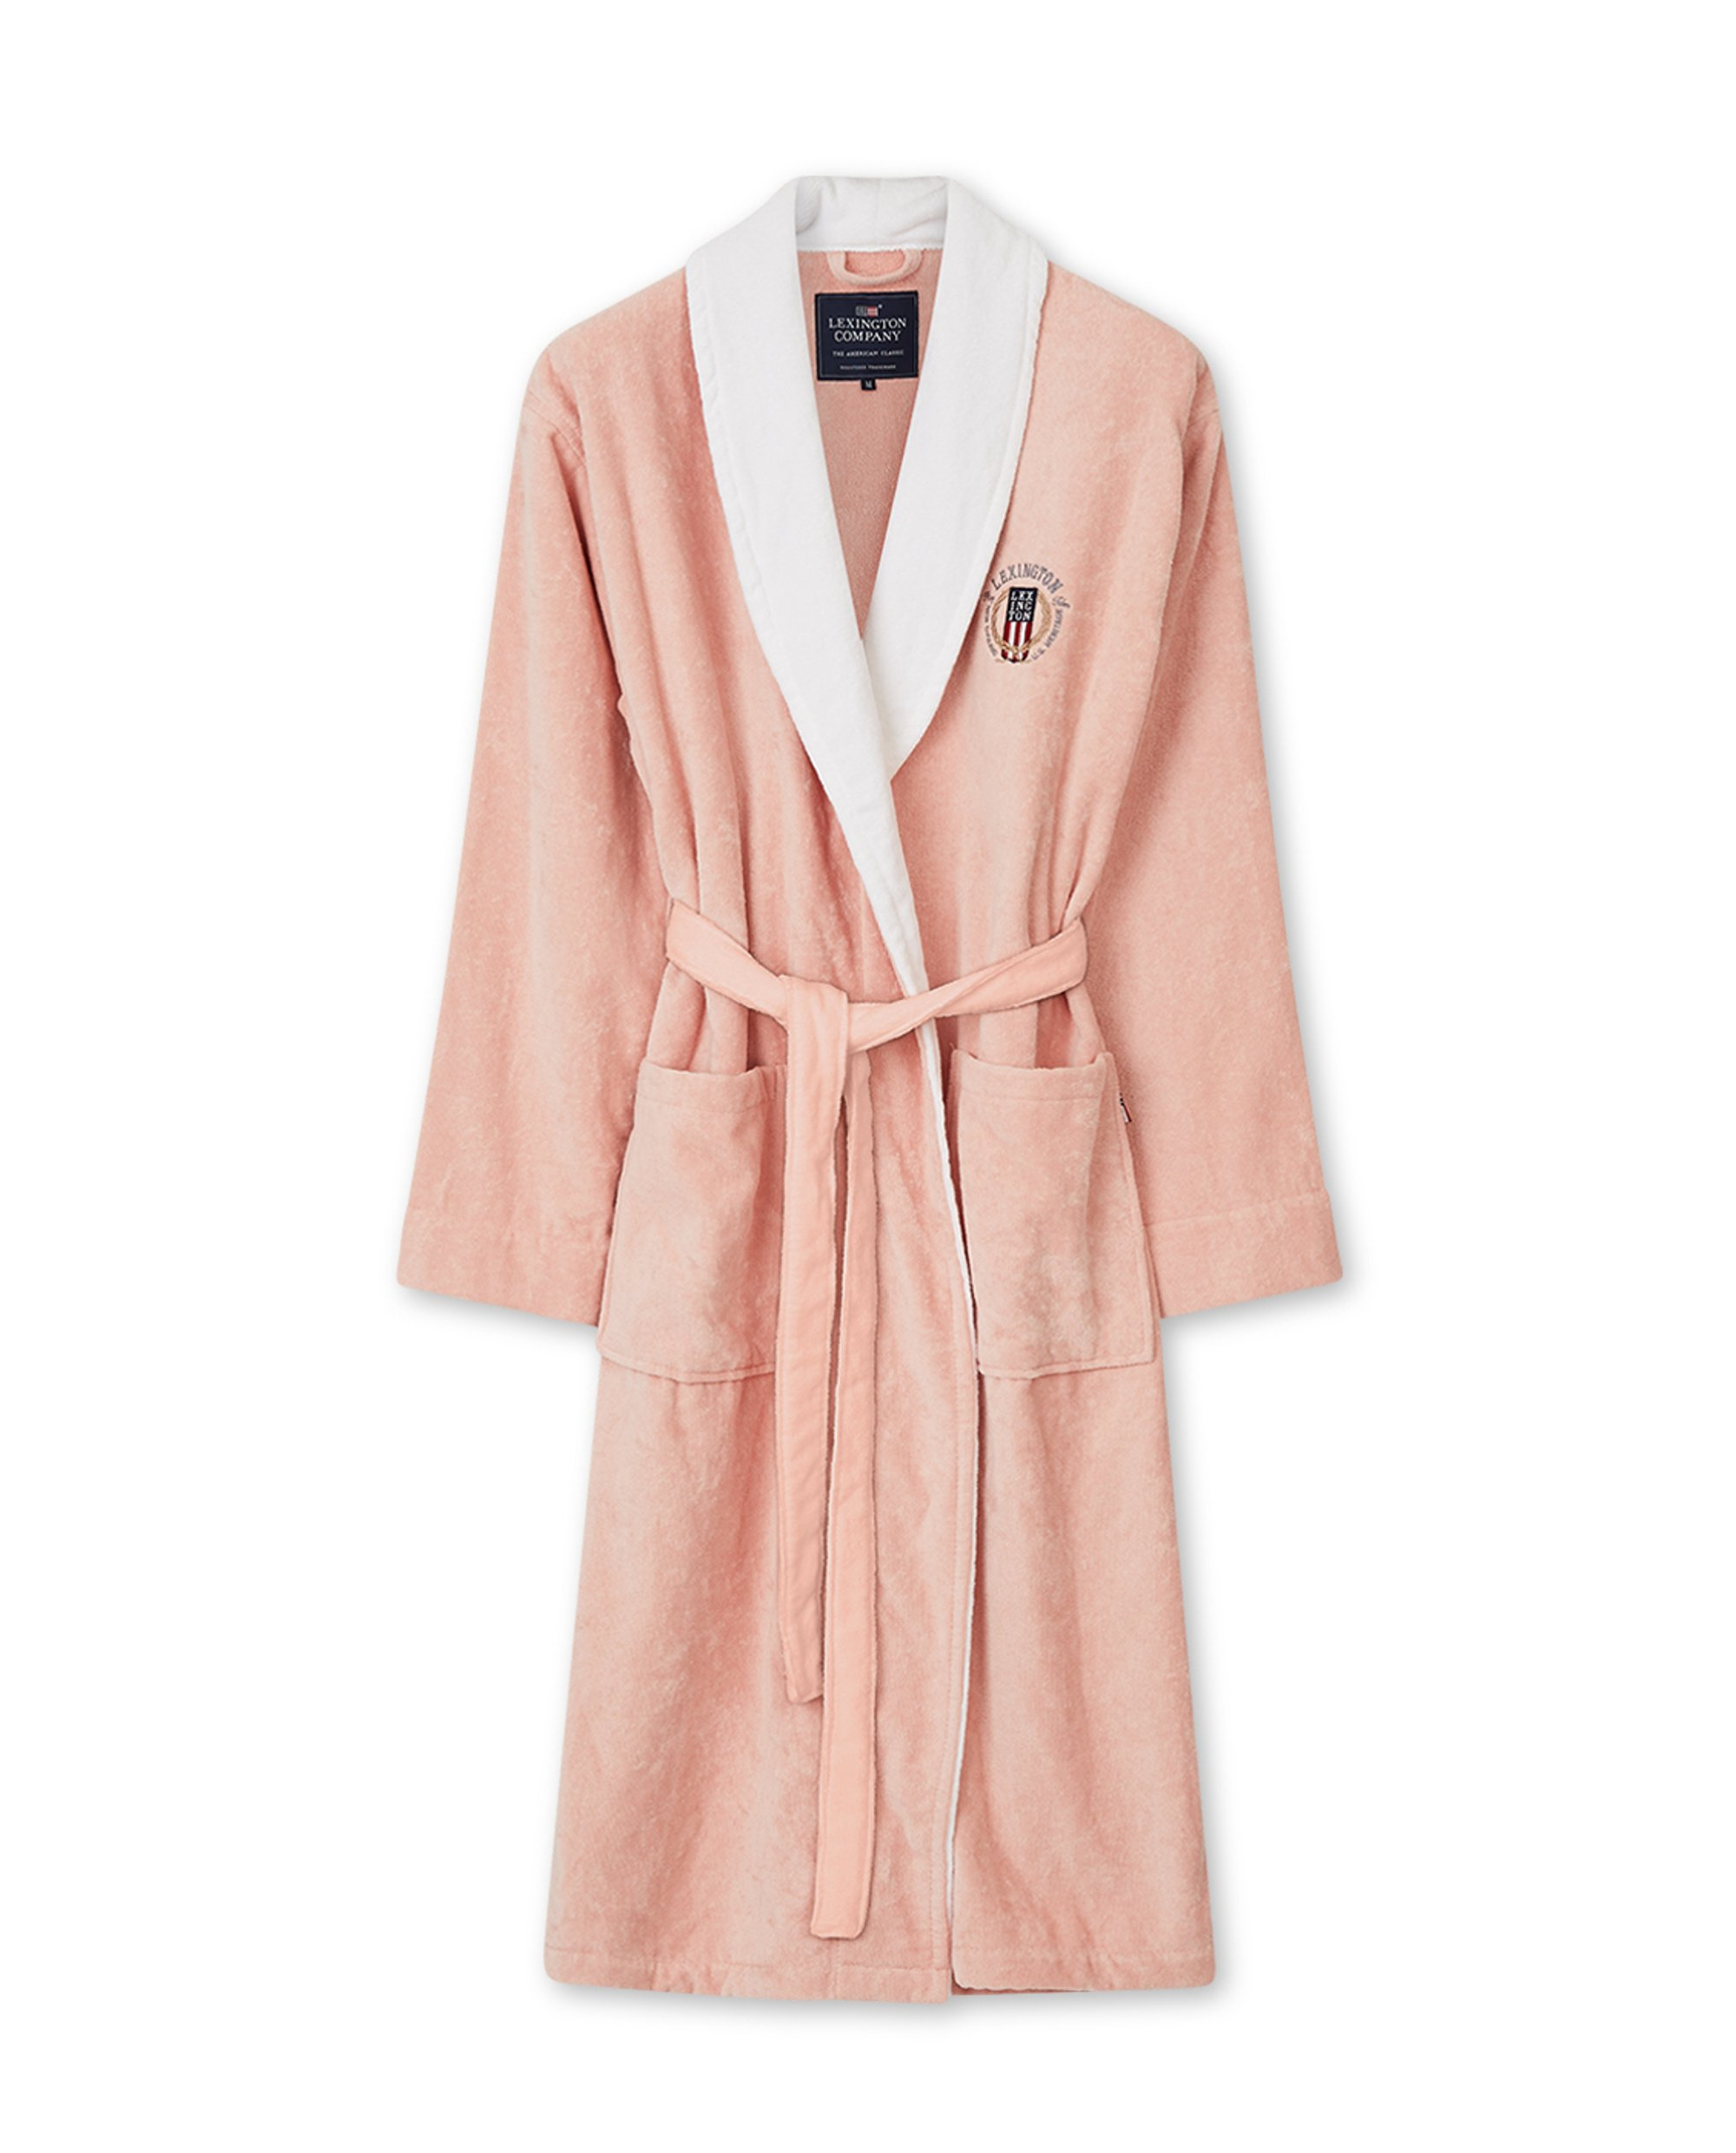 Lexington Cotton Velour Contrast Robe, Pink/White